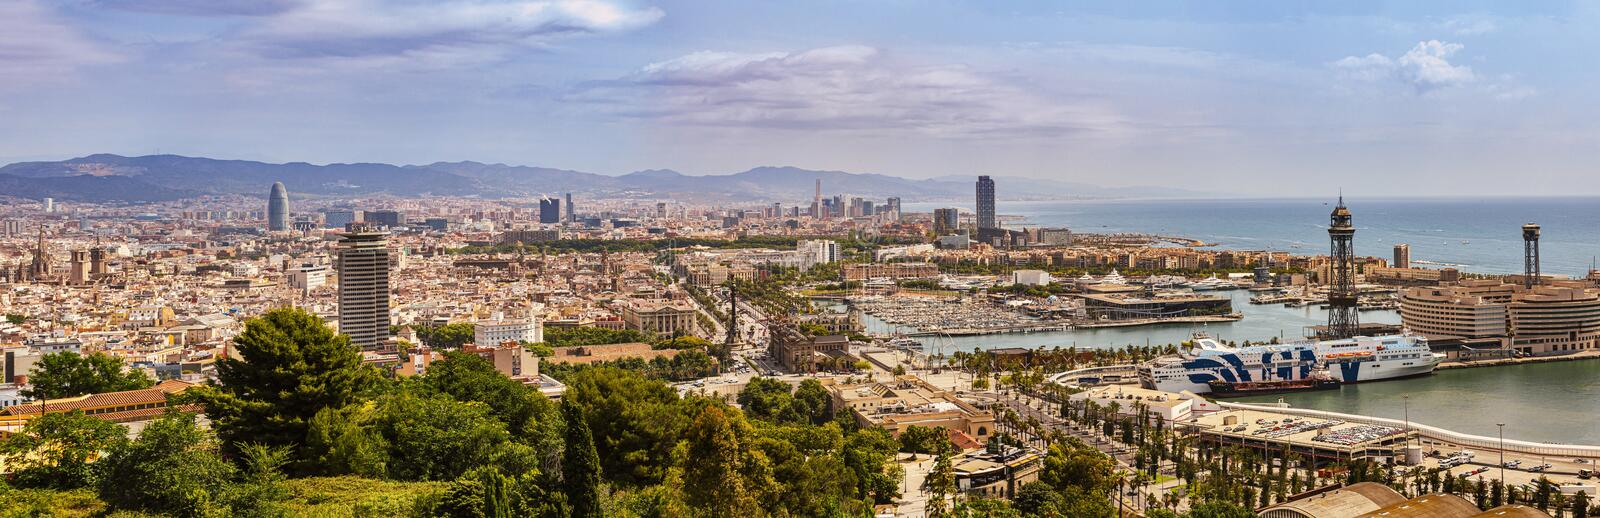 Aerial panoramic view of the city of Barcelona, Spain. stock photo